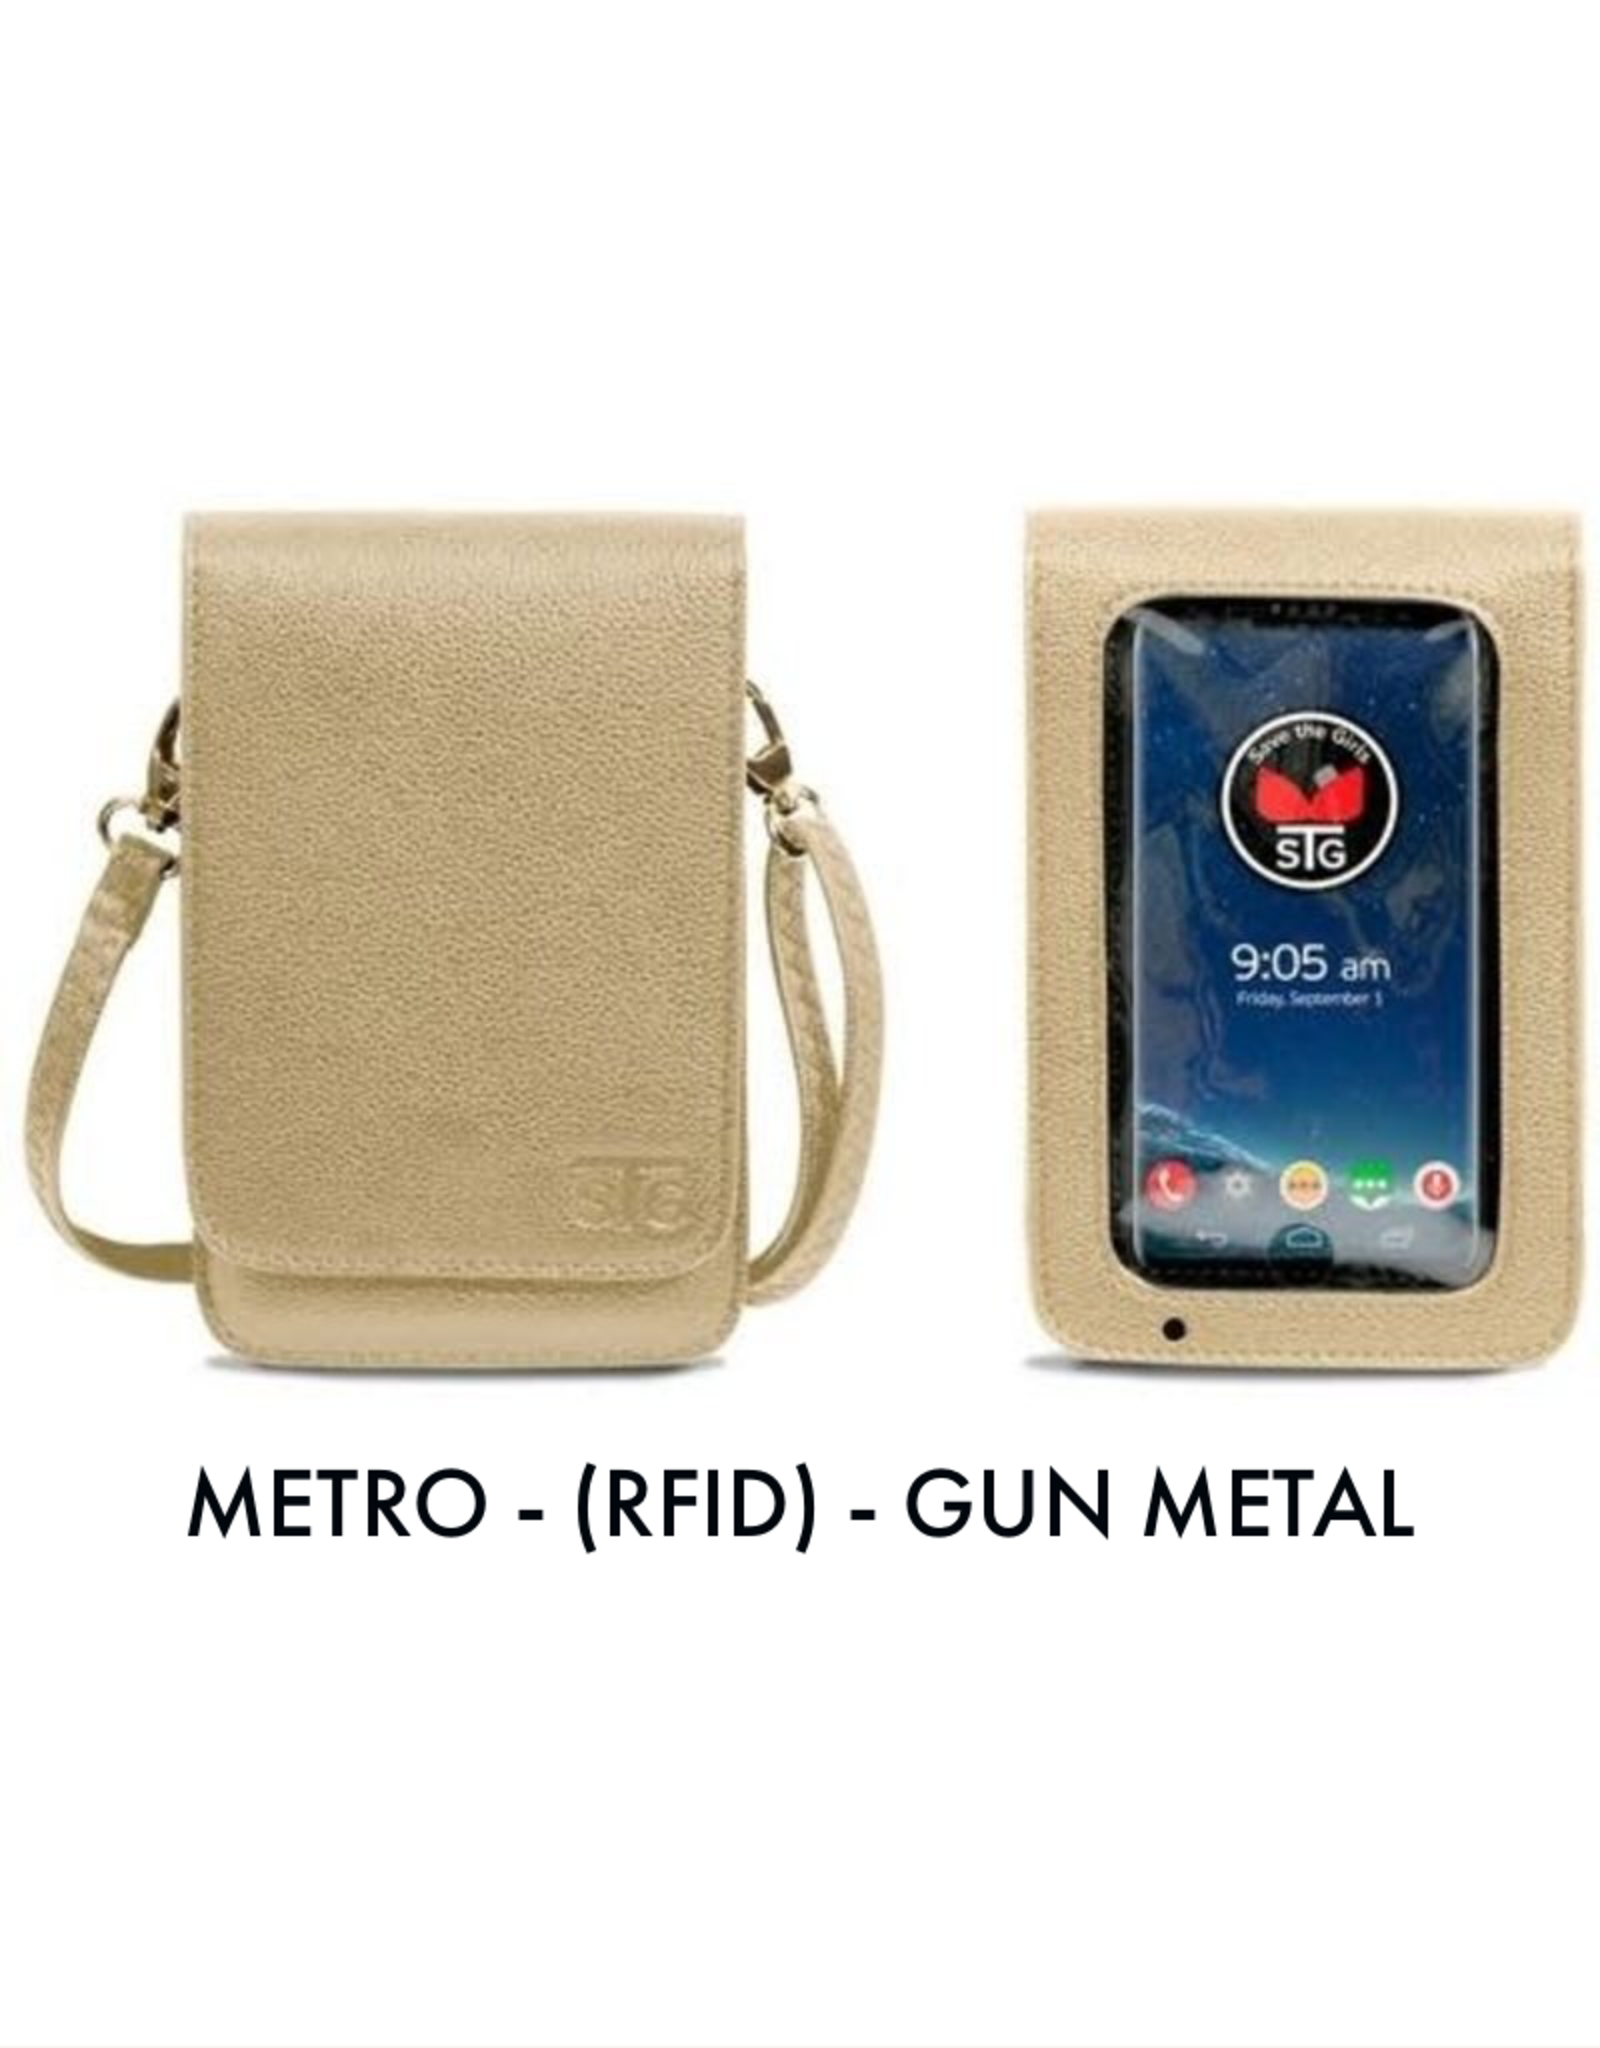 Save The Girls Cell Phone Purse - Metro